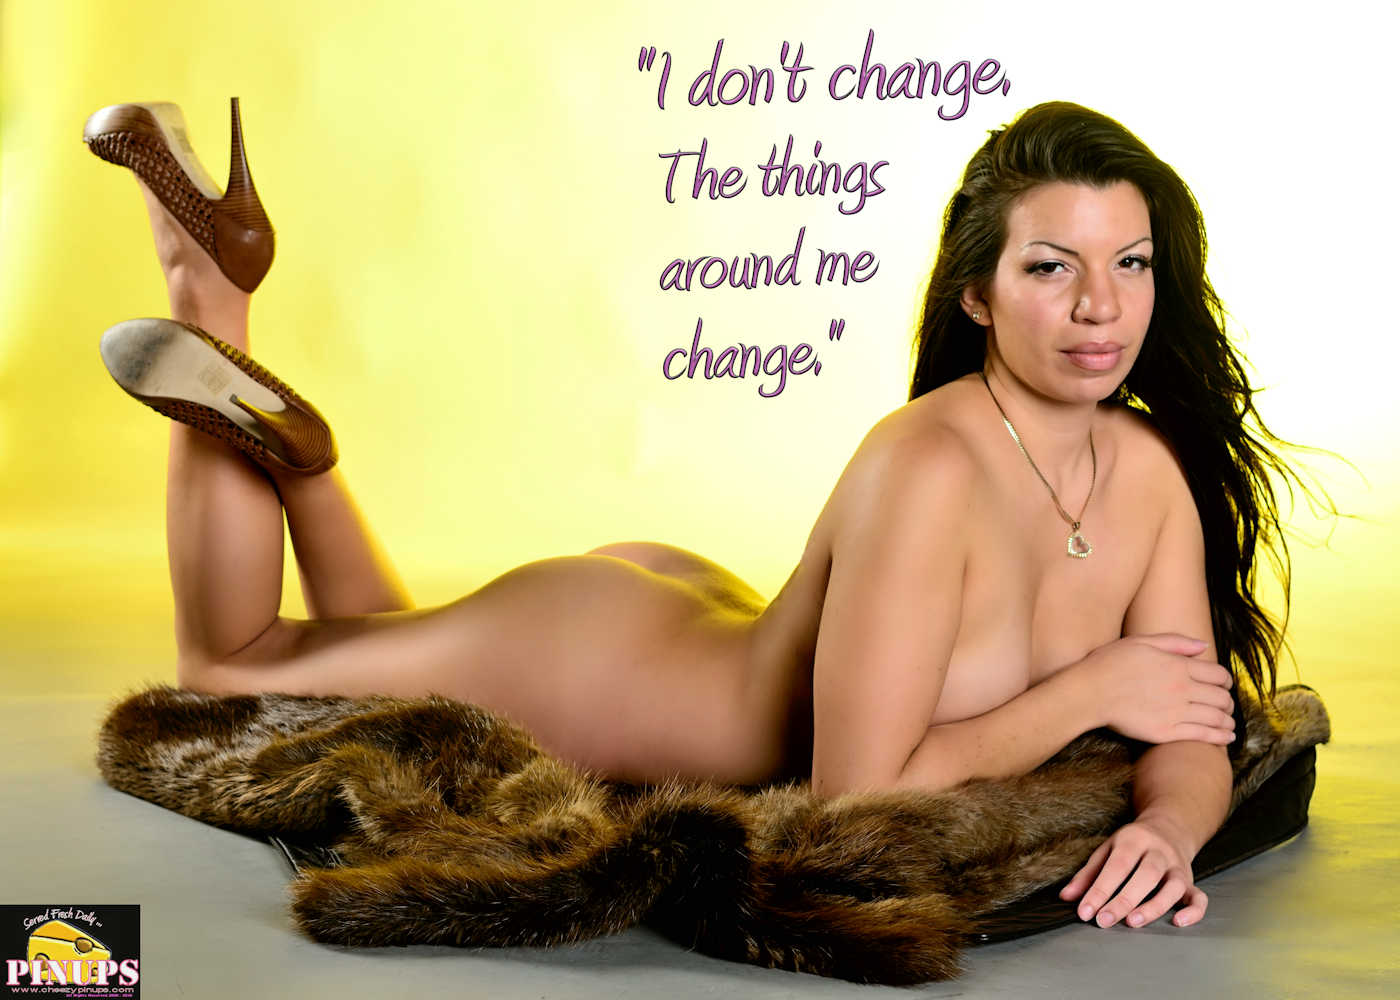 "Cheezy Pinup - January 7, 2018   ""I don't change. The things around me change."" - Jeremy Renner Model: Marie"